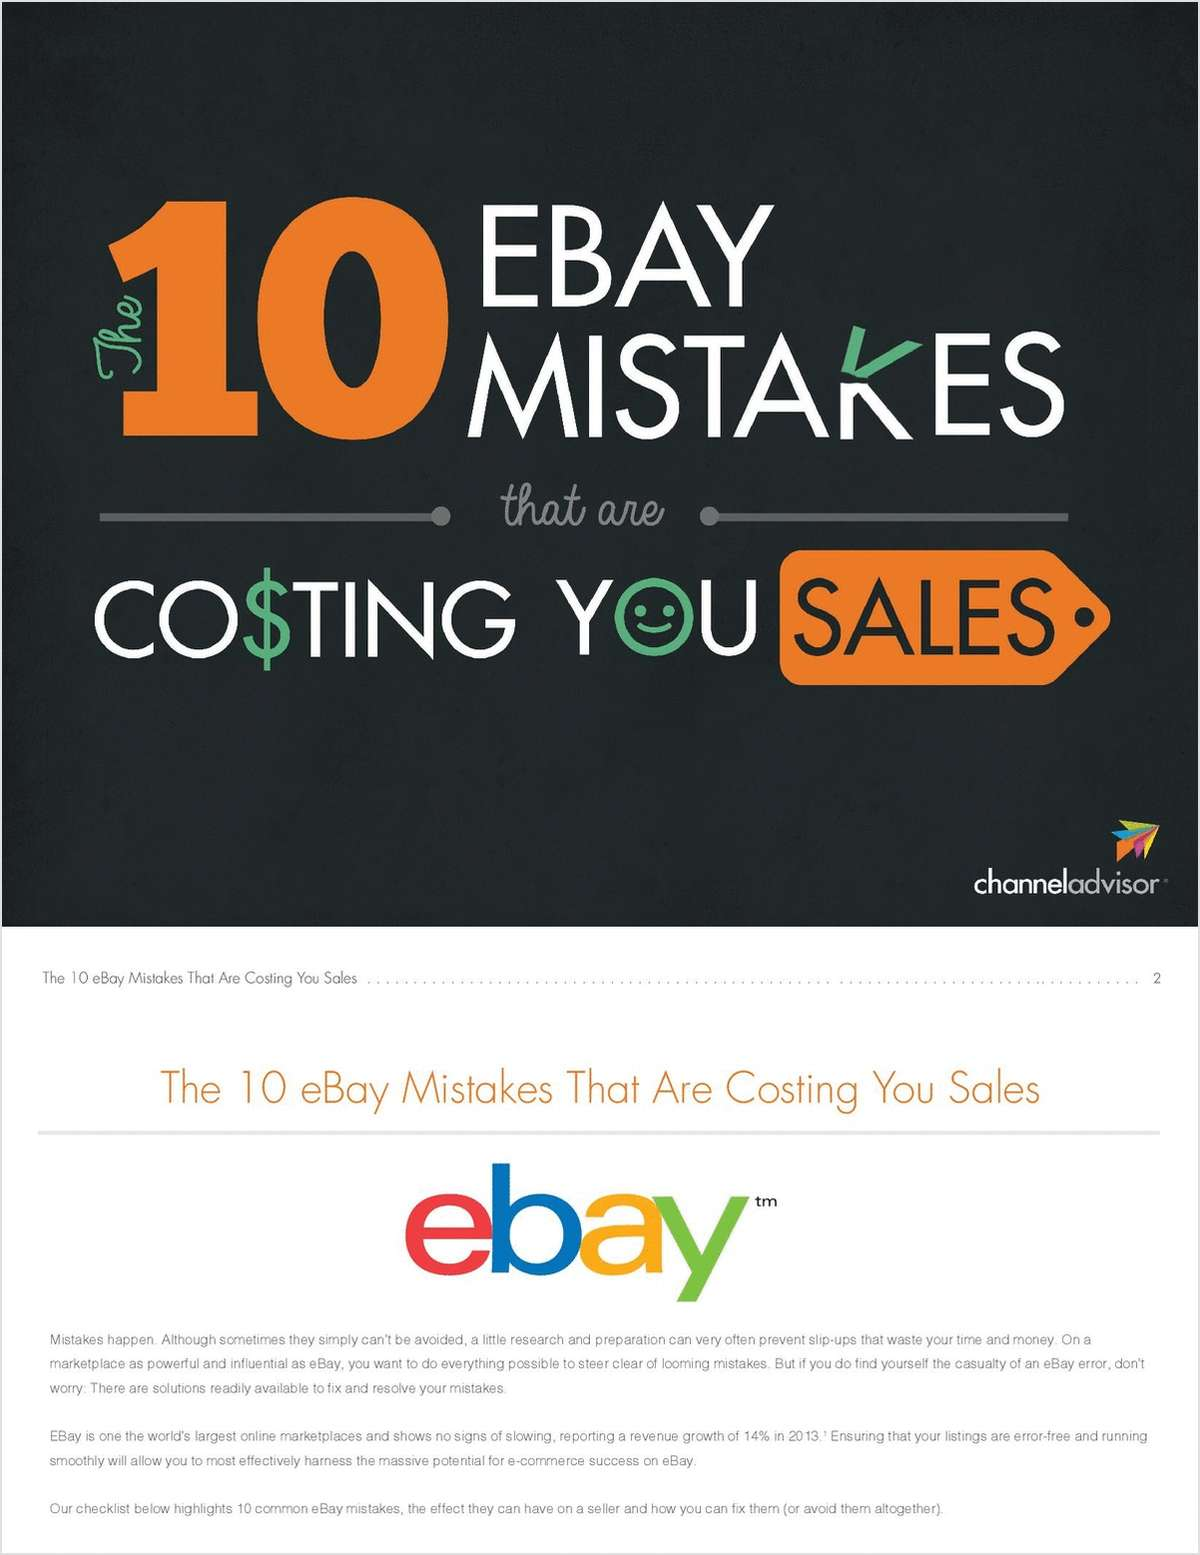 10 eBay Mistakes That Are Costing You Sales